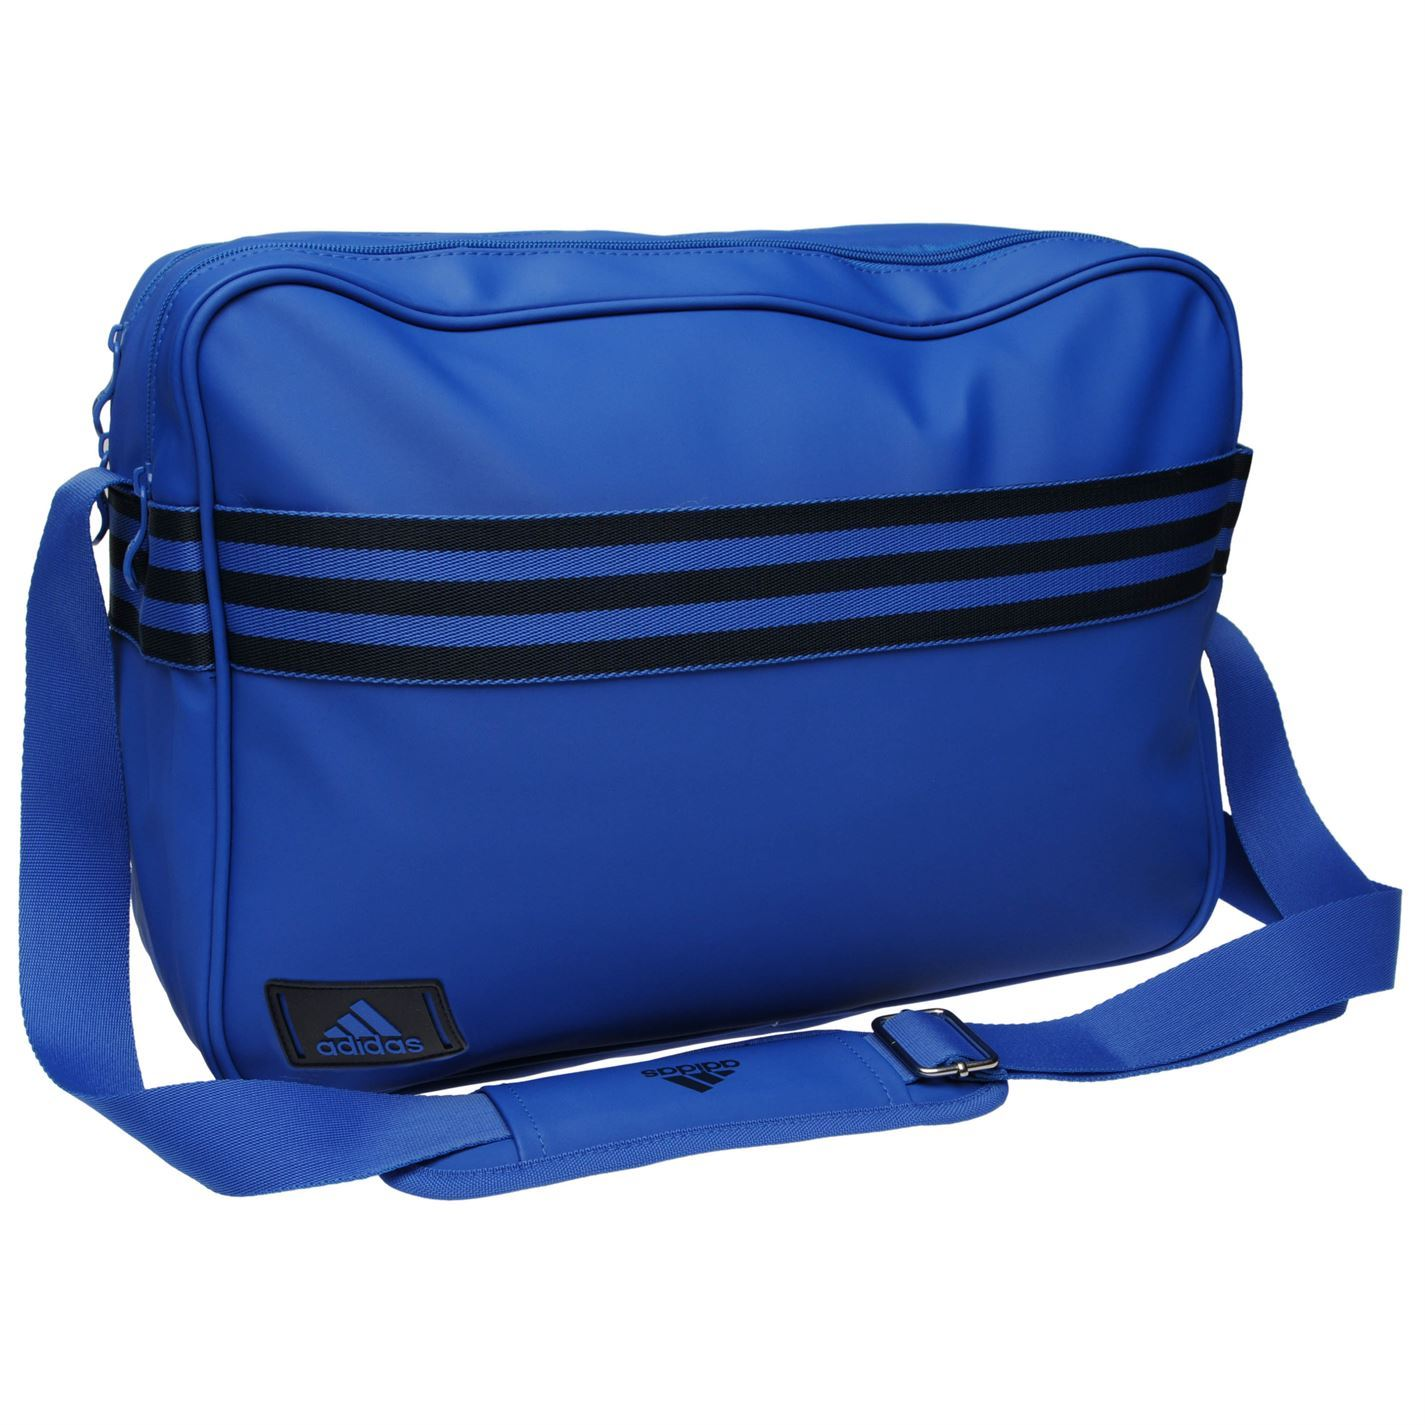 The adidas Enamel Medium Messenger Bag is ideal for college or school 87e628463ec4c